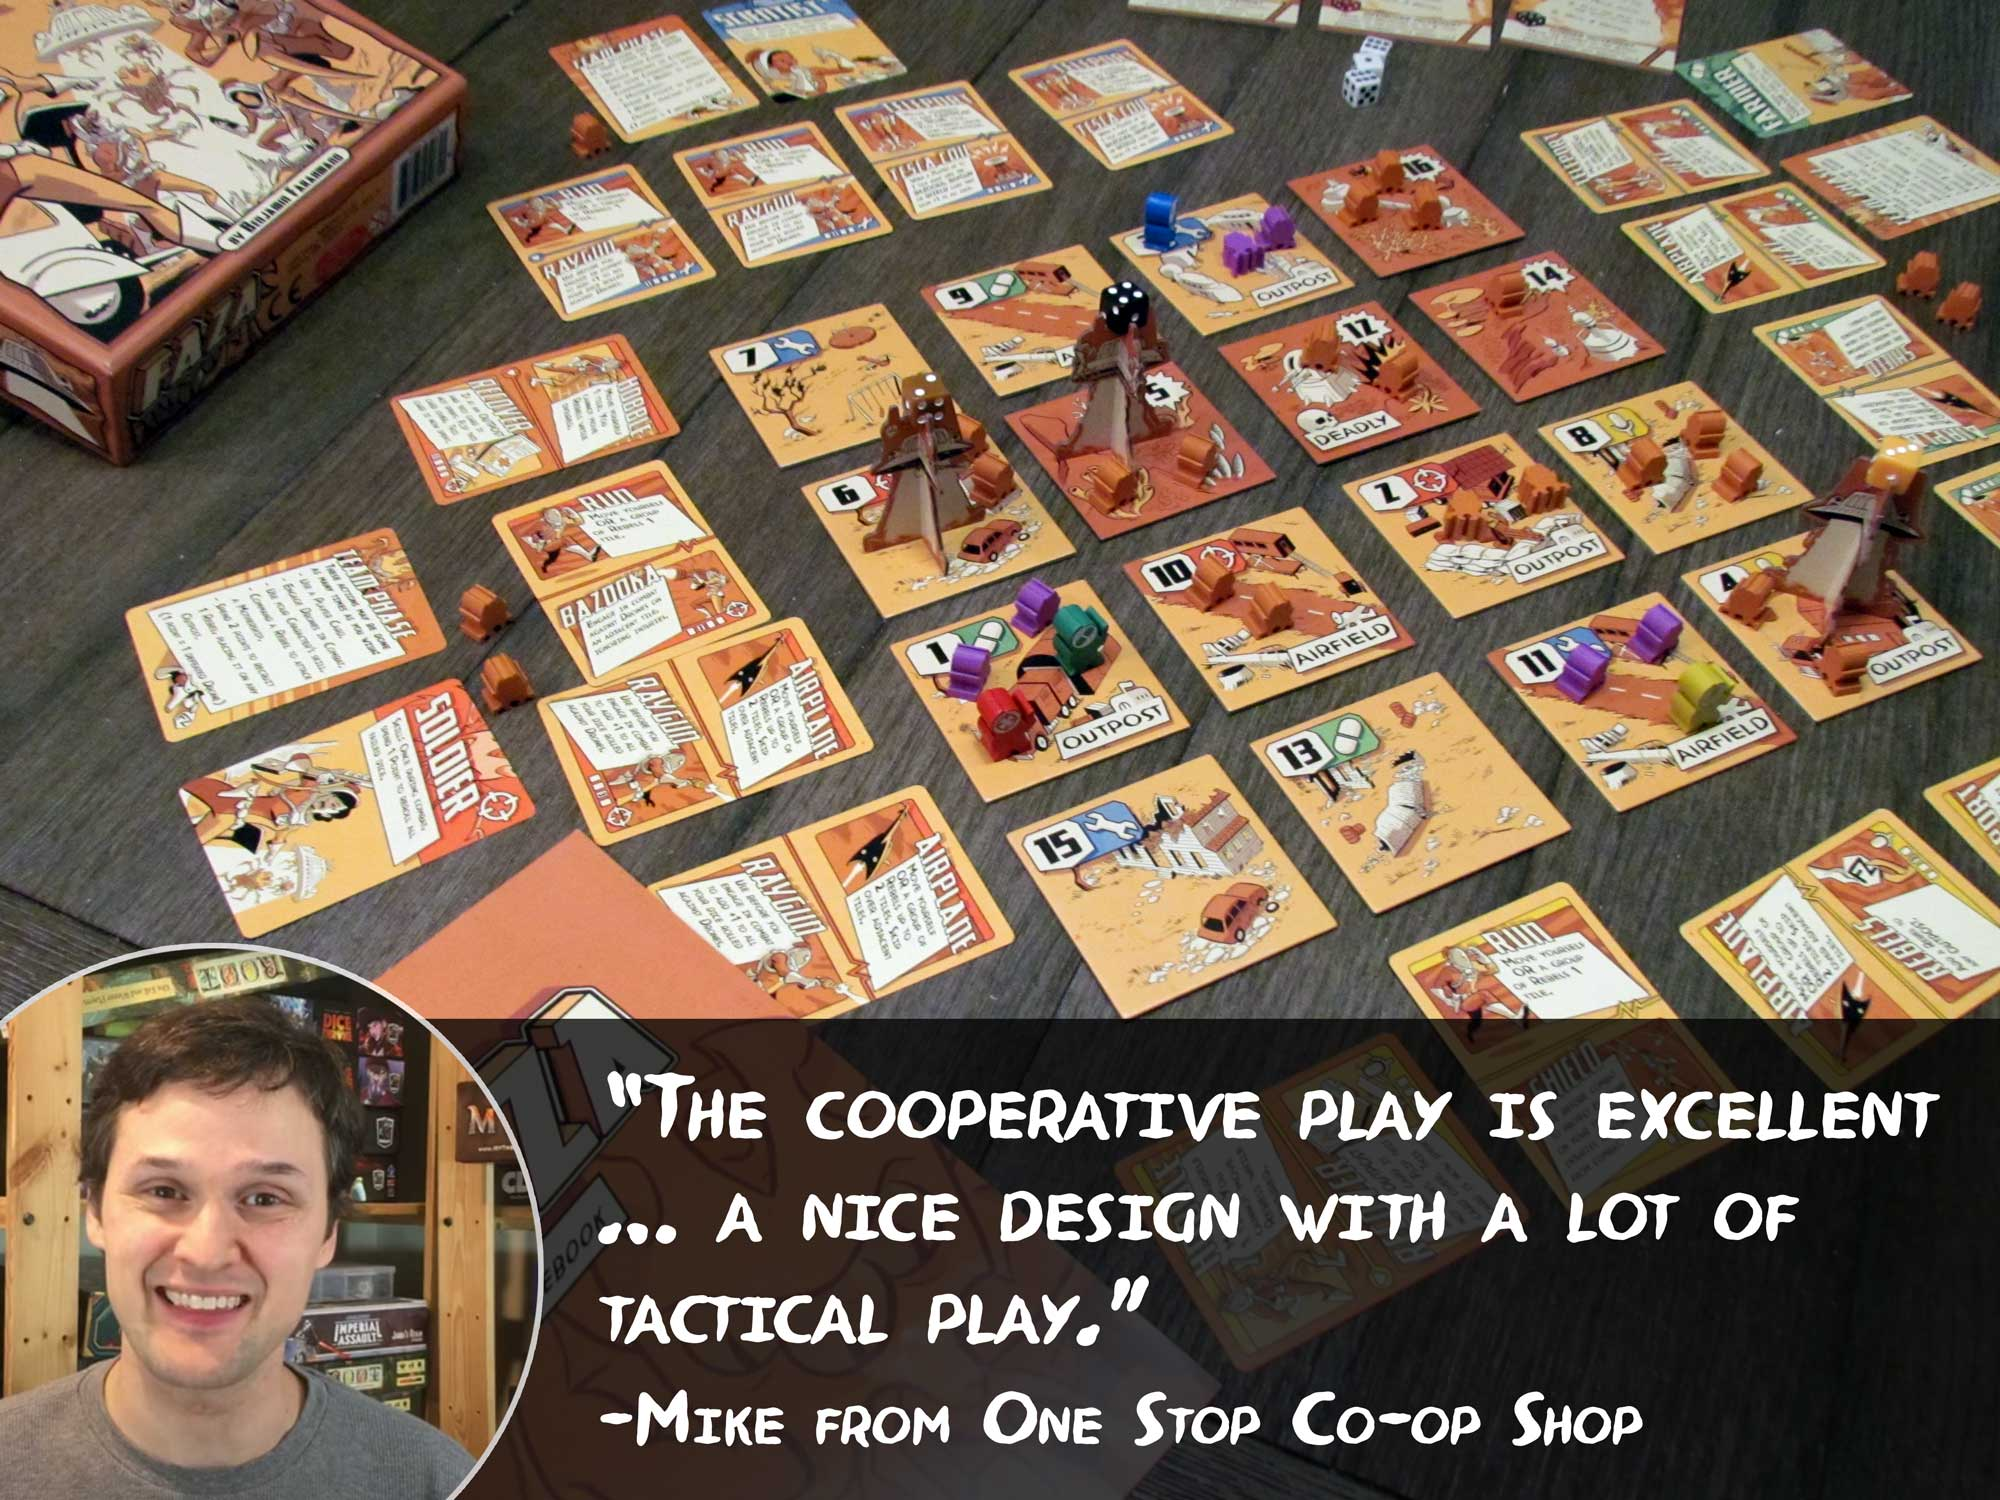 An Excellent Cooperative Game